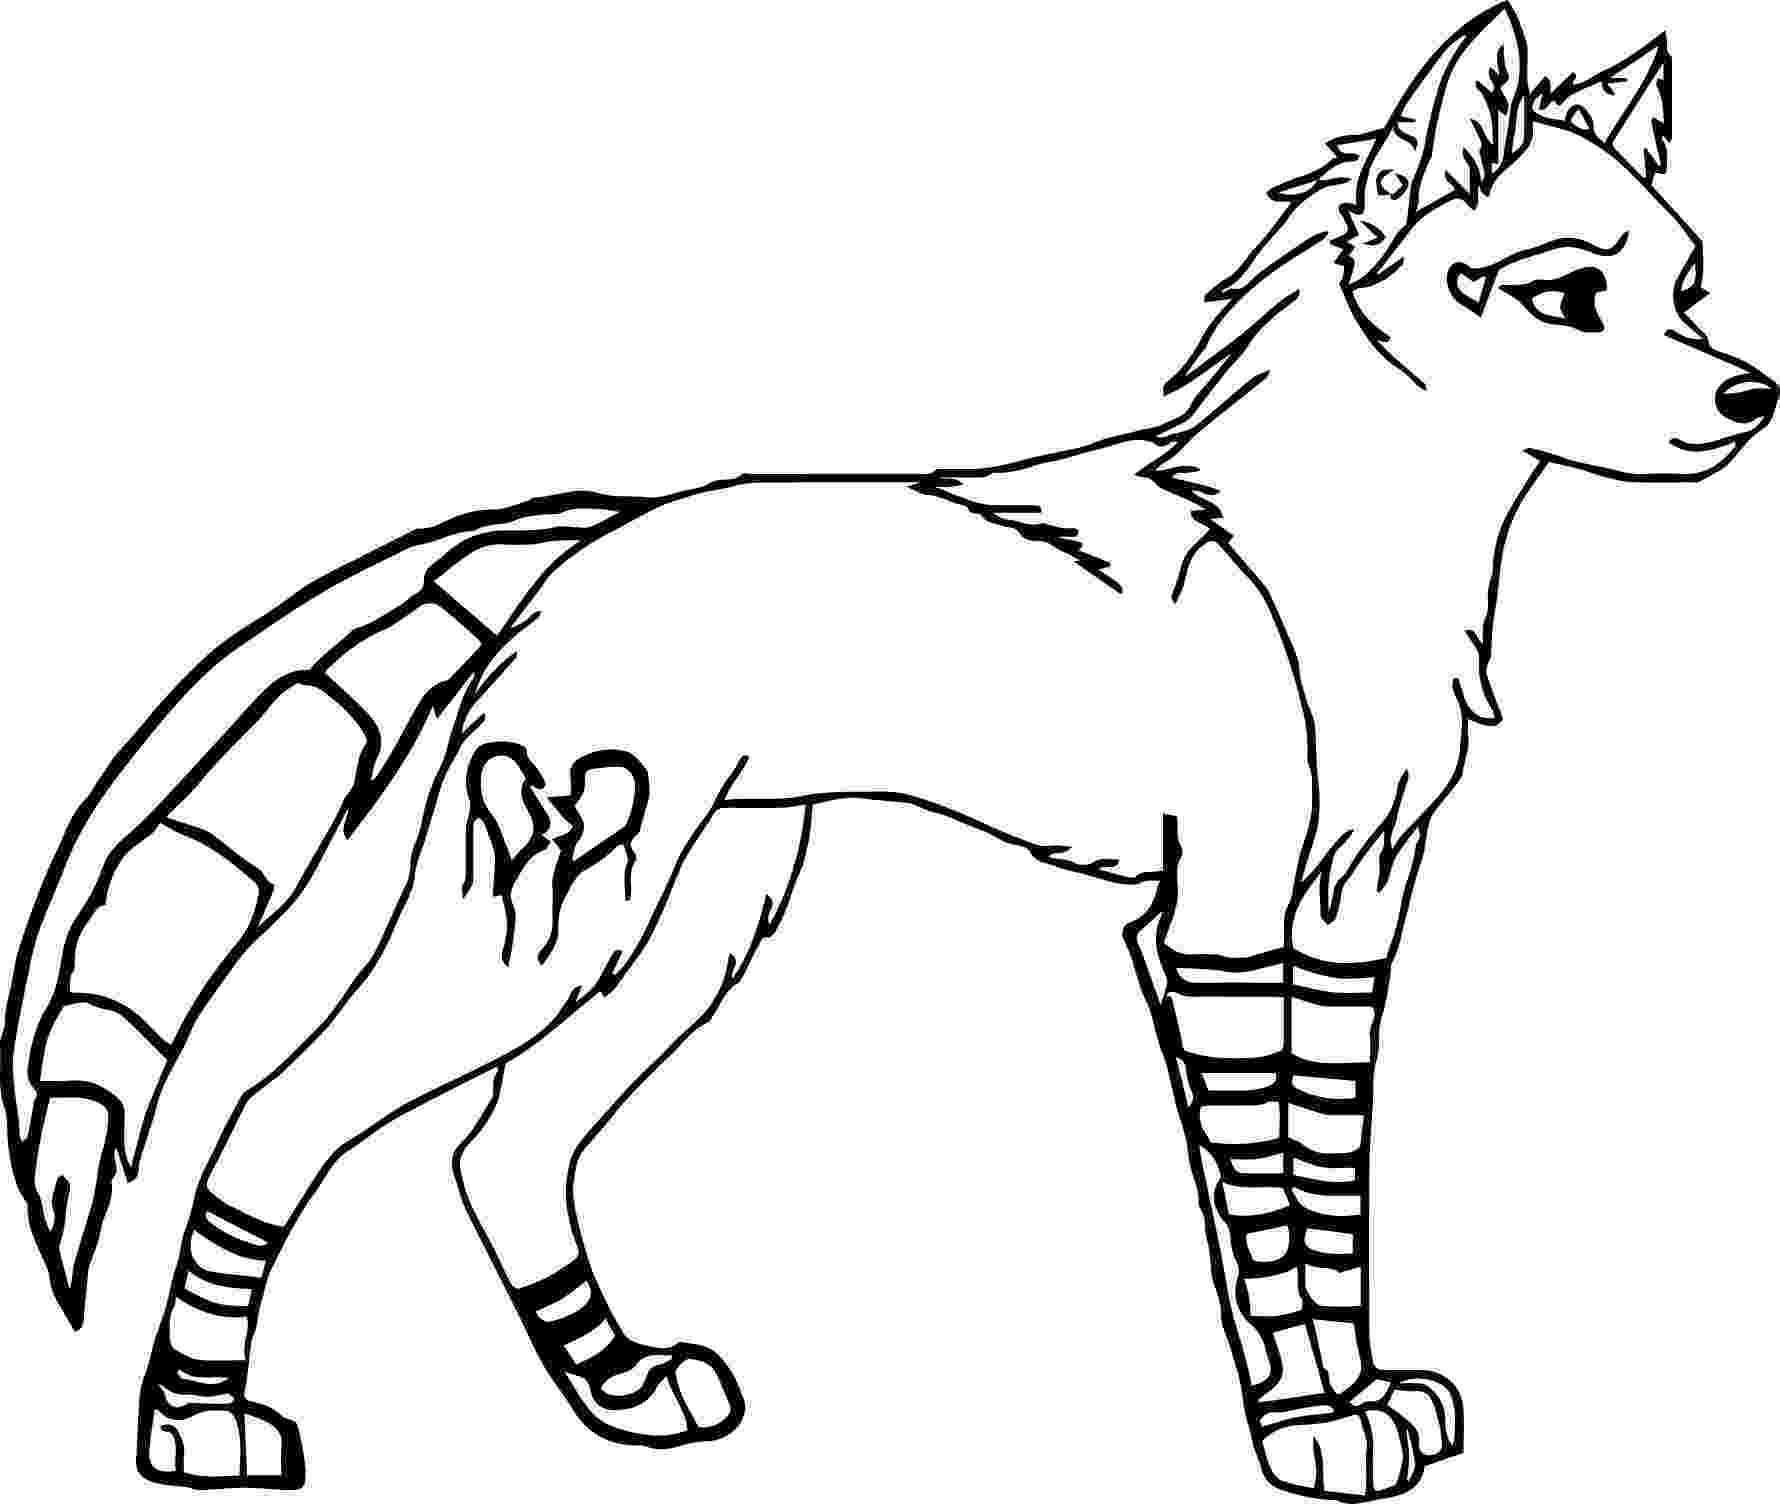 wolf colouring pages free printable wolf coloring pages for kids pages wolf colouring